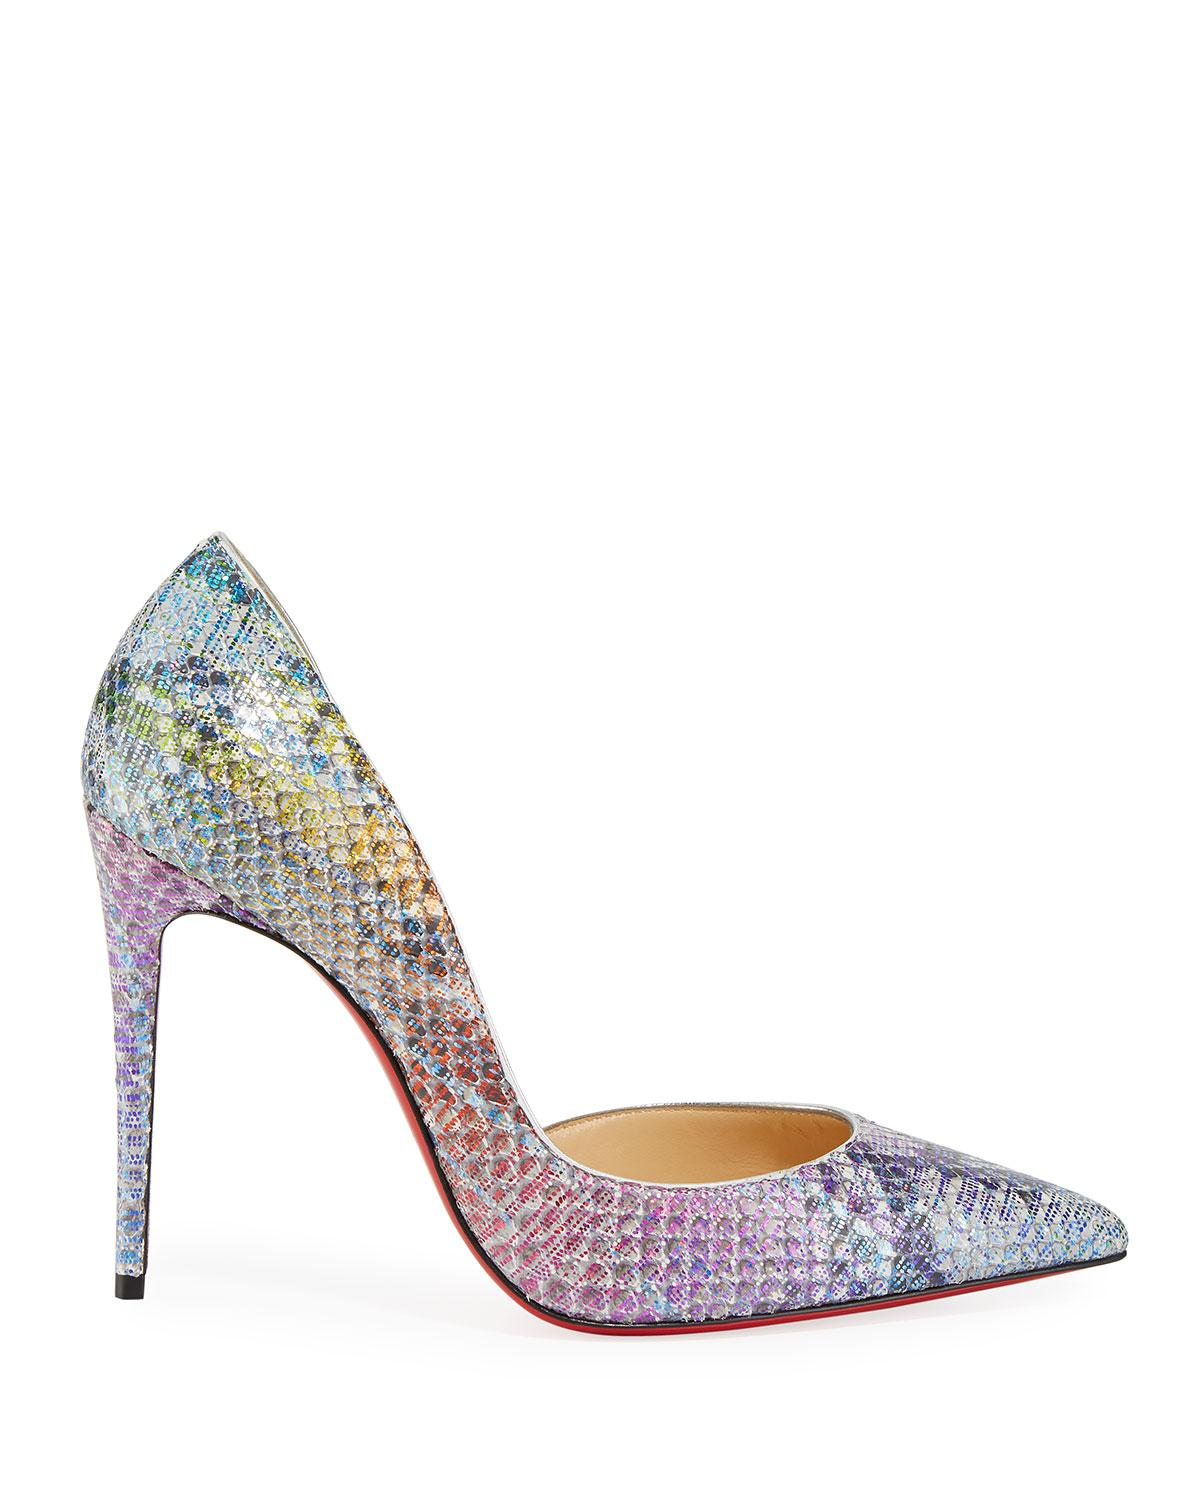 507359ac1dbd Lyst - Christian Louboutin Iriza Python Unicorn Red Sole Pumps in Natural